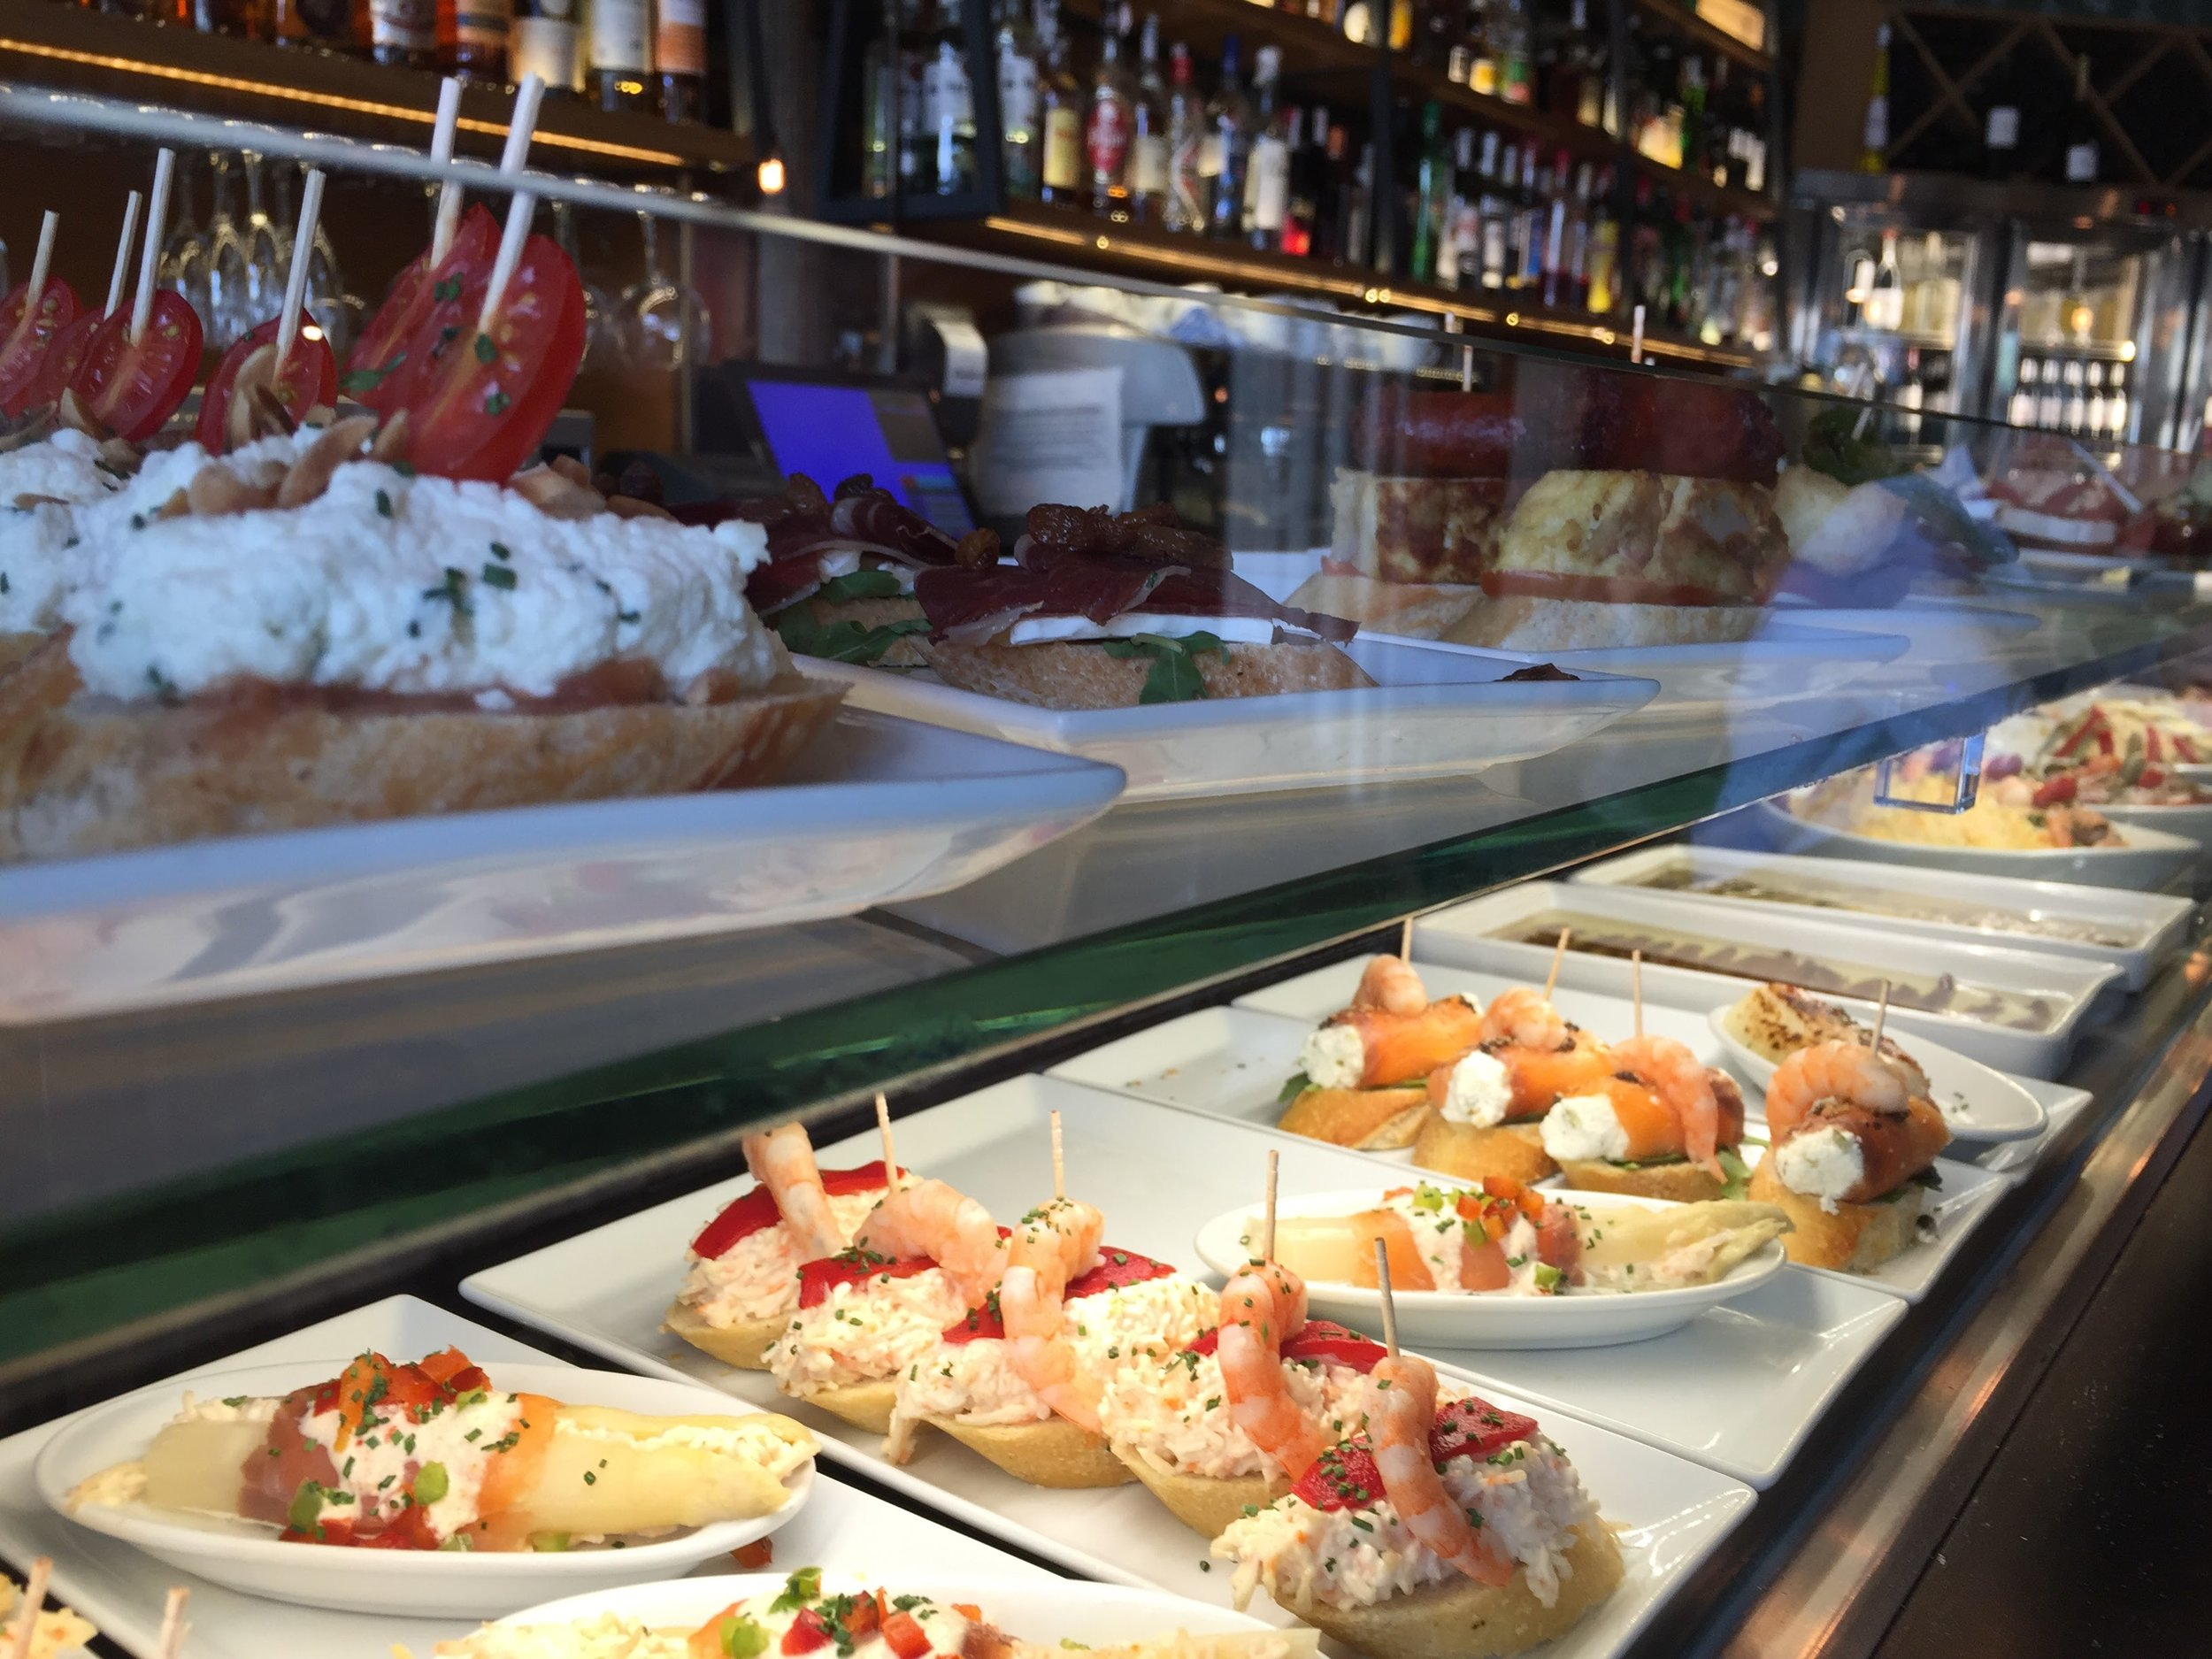 Here are some delicious tapas. If you see a tapa in real life put it in your belly immediately.